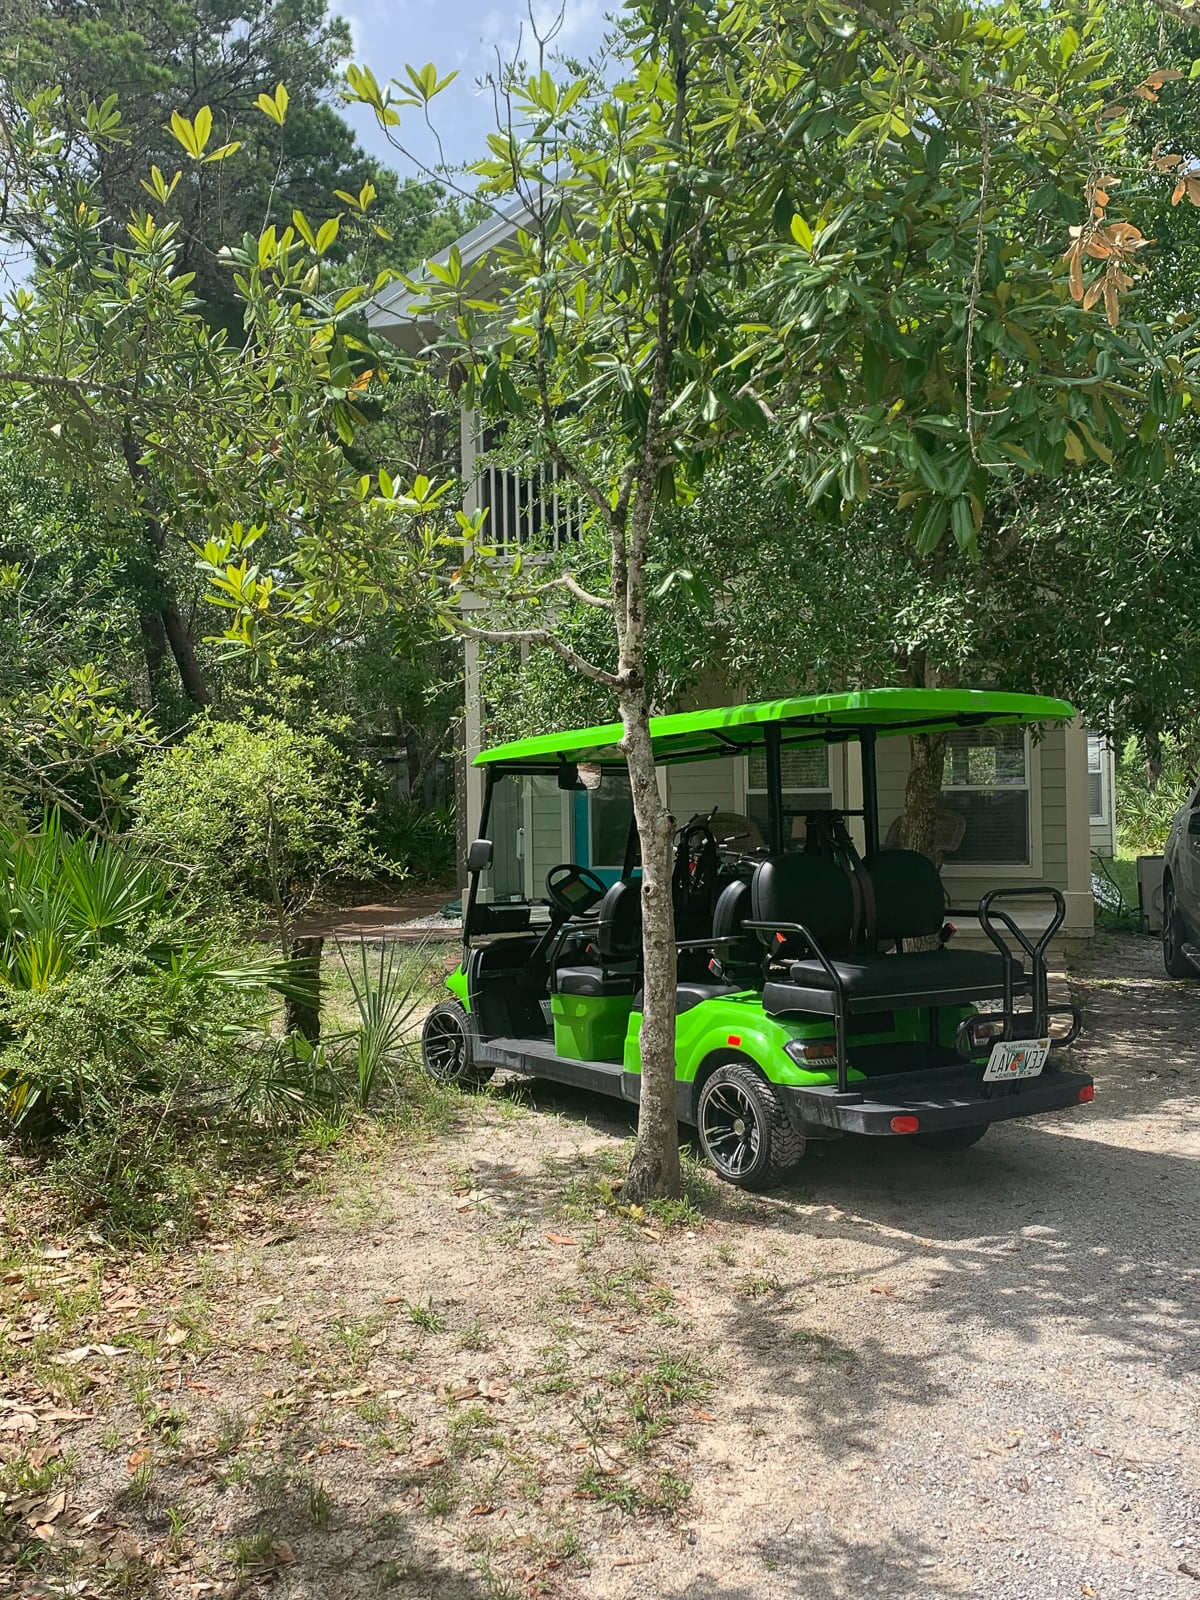 Street Legal Golf Cart Rental in Grayton Beach